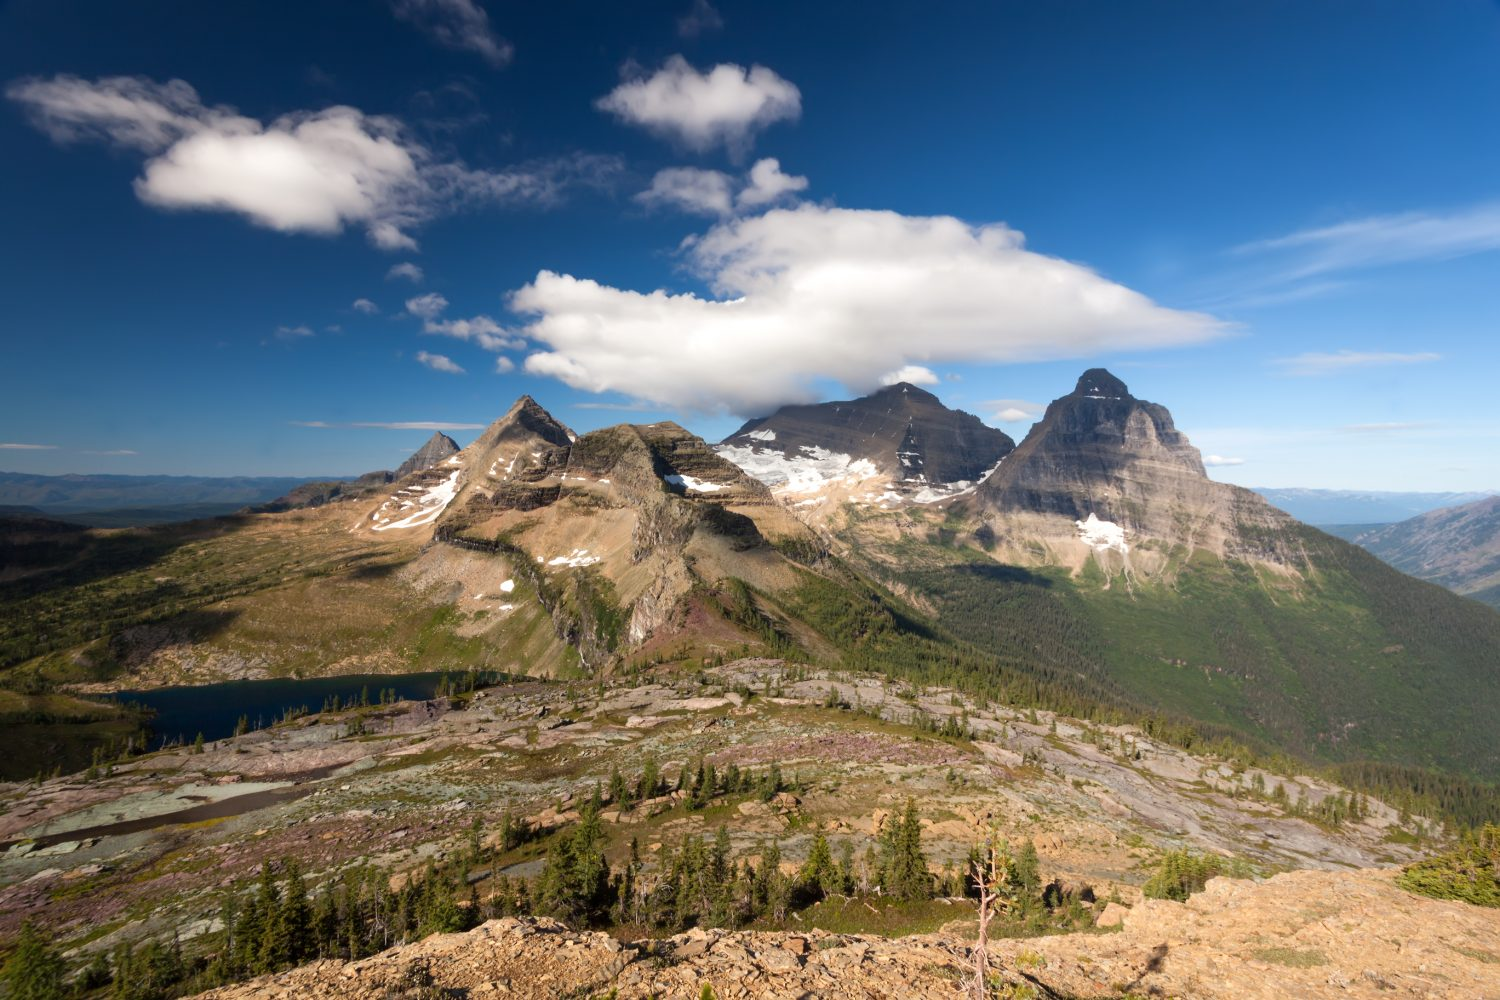 """""""Kinnerly and Kintla"""" Two imposing massifs standing high above Glacier National Park, Montana on the Canadian Border. This image was captured from the summit of Boulder Peak. f/22 @ 1/15 sec using a 17mm lens and a Polarizing Filter. www.backcountryjourneys.com/blog/2015/11/kinnerly-and-kintla #glacier #montana #photography"""